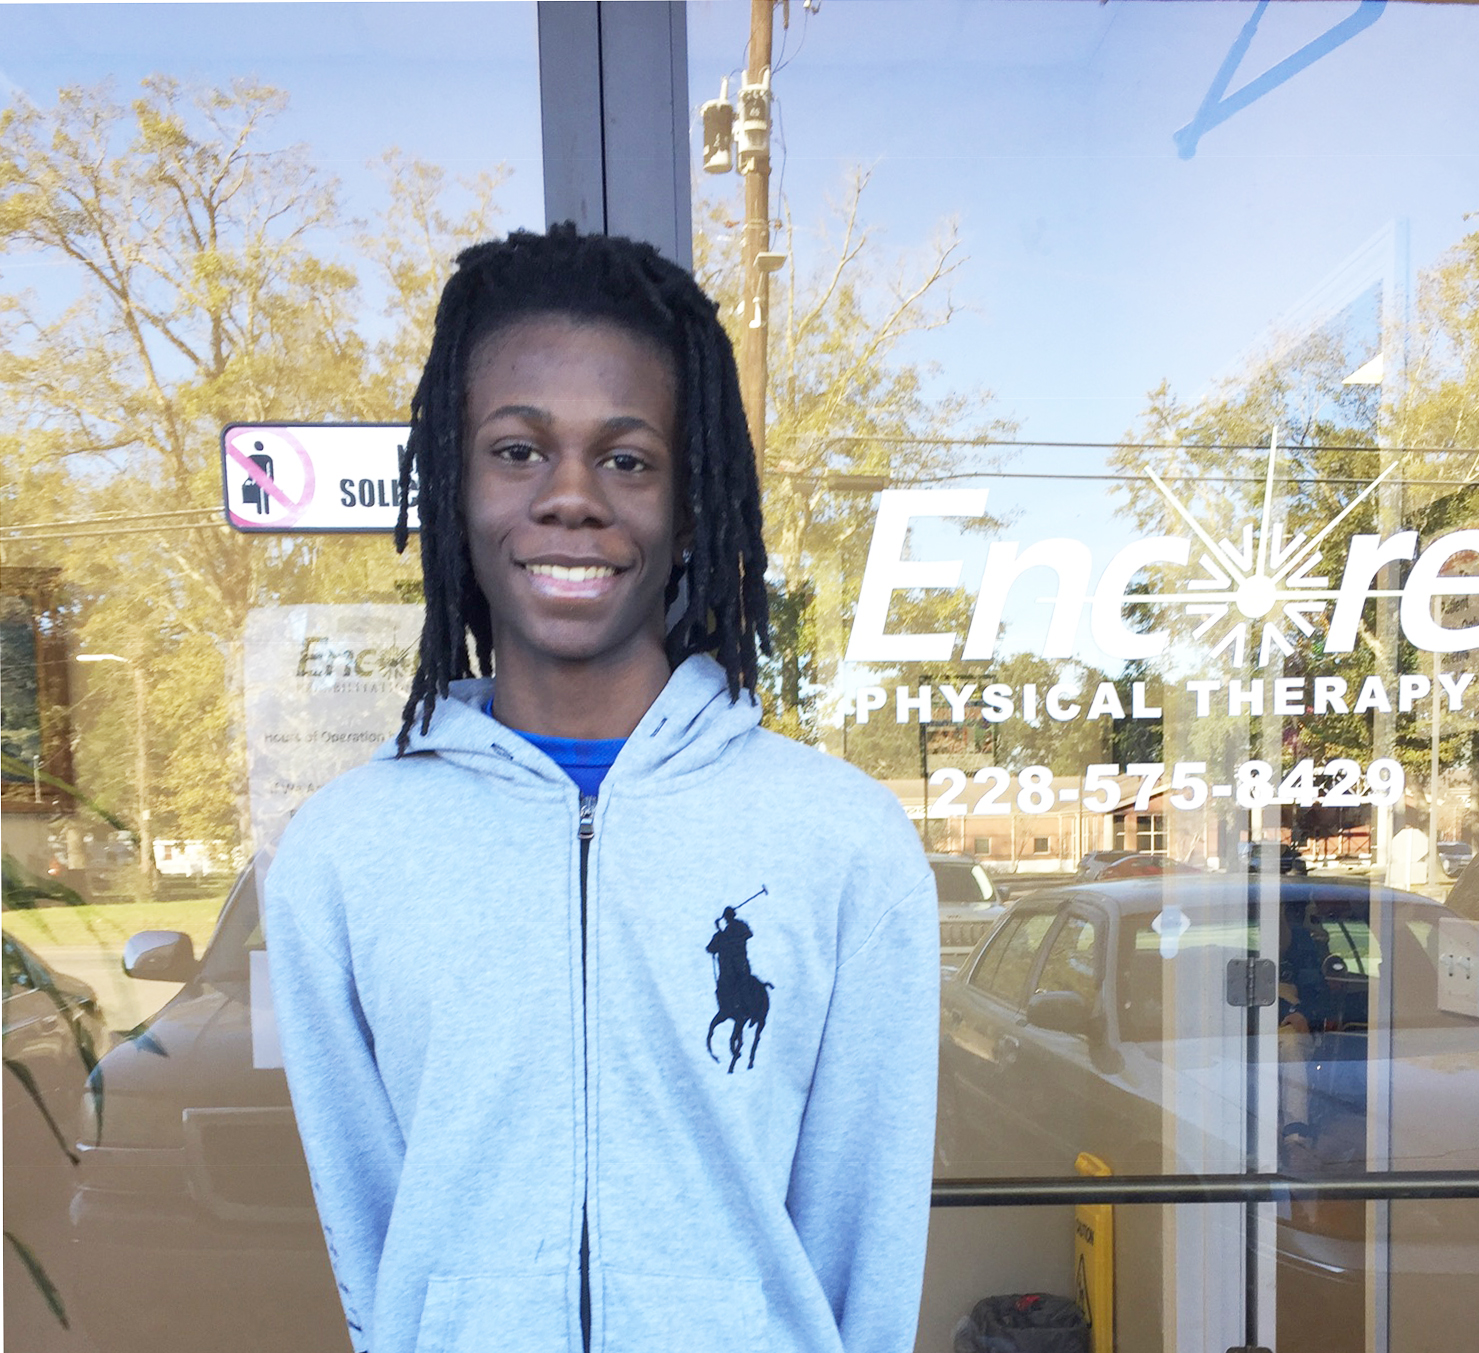 Na'Sean Coleman is Athlete of the Month for Encore Rehabilitation-Long Beach